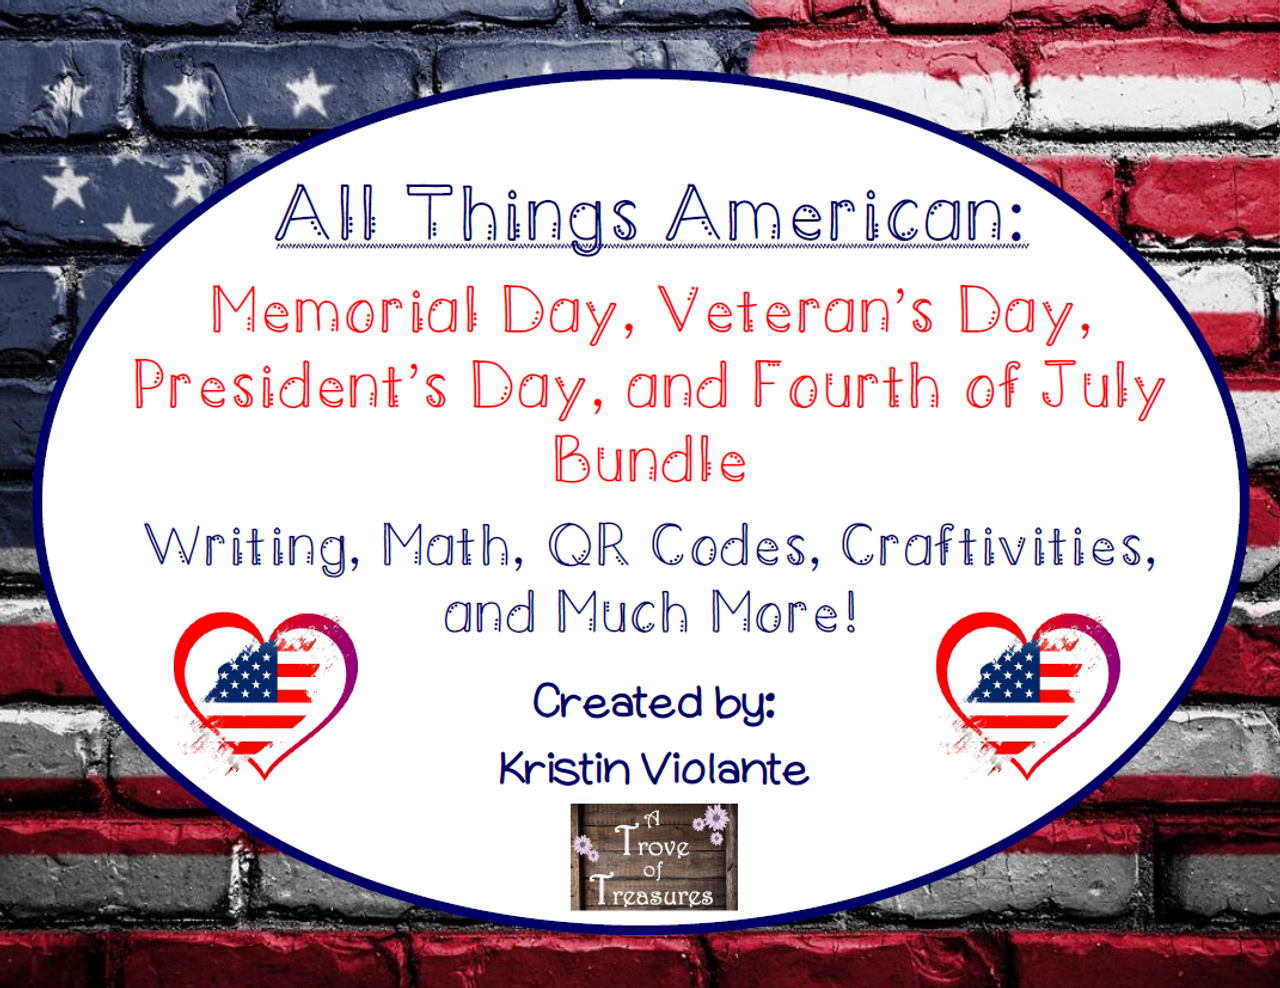 All Things American: Memorial /Veteran's Day, President's Day, Fourth of July